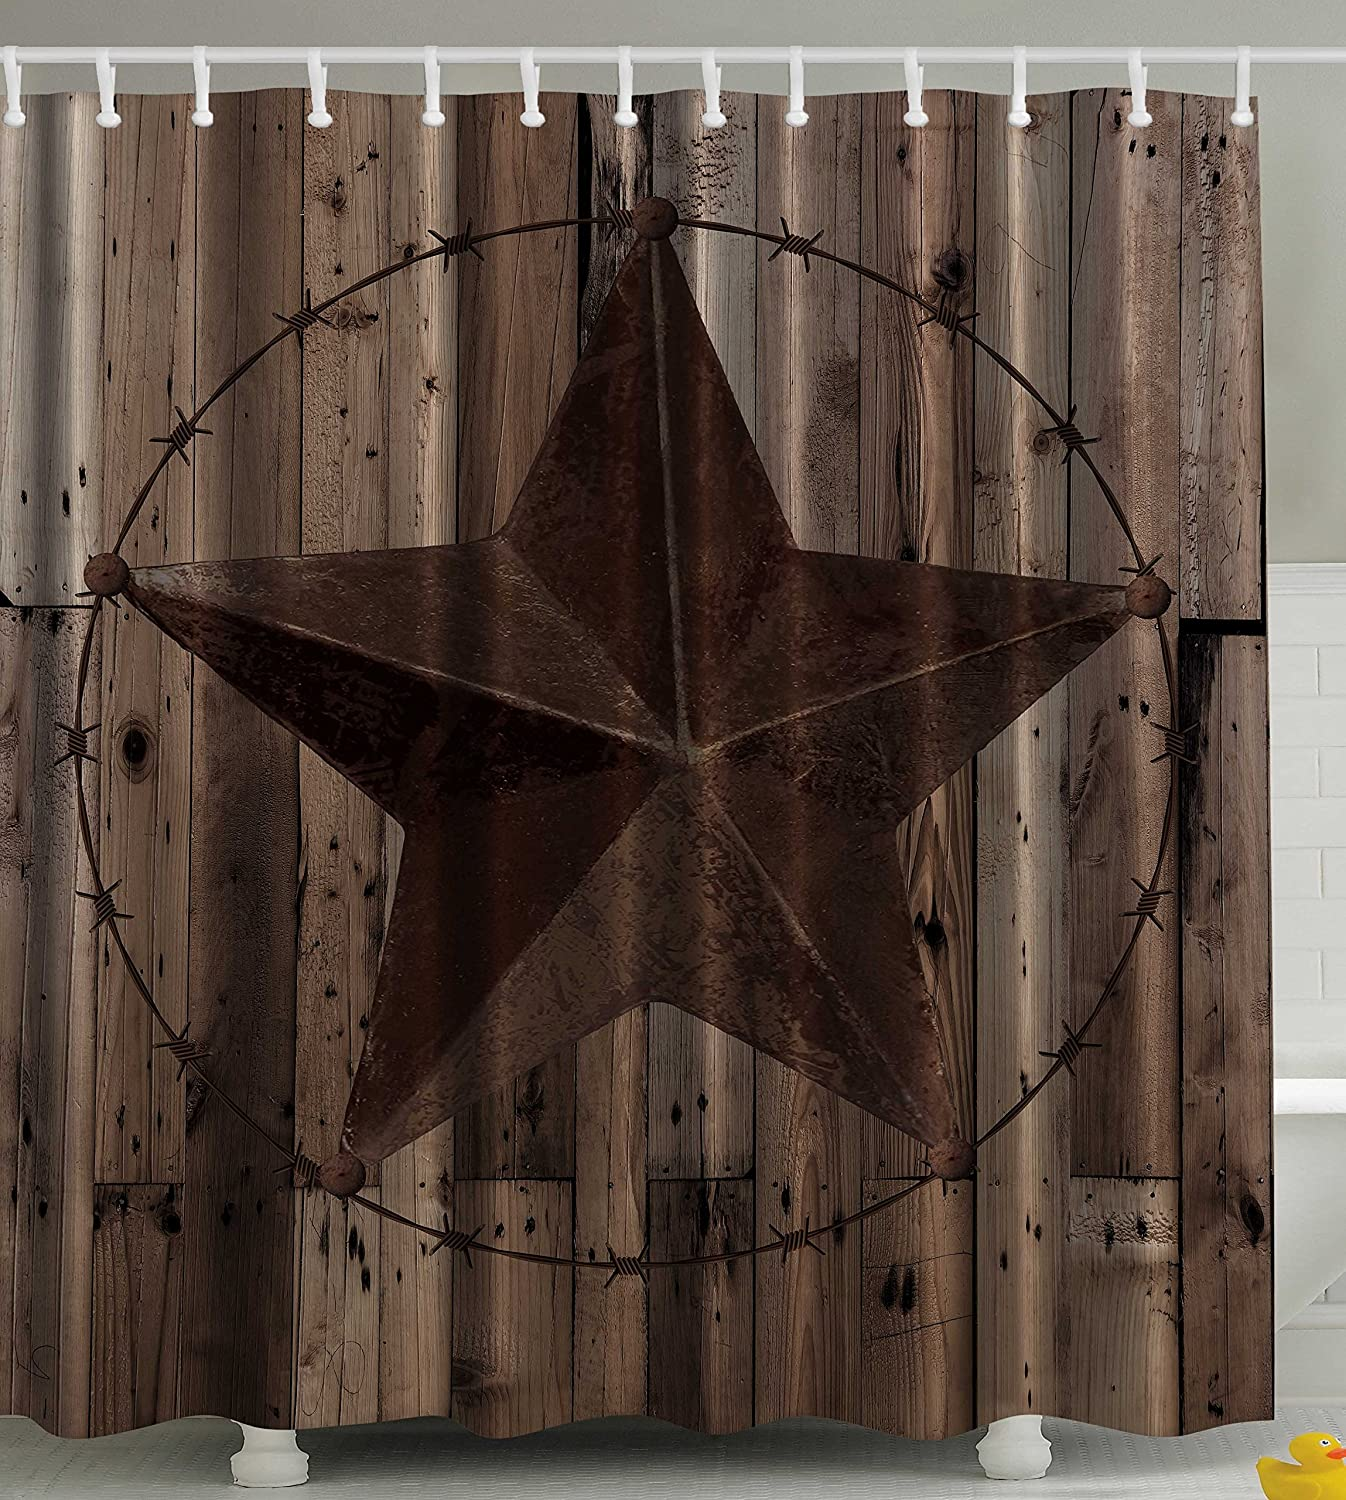 Amazon.com: Western Decor Southwestern Primitive Shower Curtain Barbwire  Star In Wooden Plank Home Decorations And Fashion Design Decor Bathroom  Gifts For ...